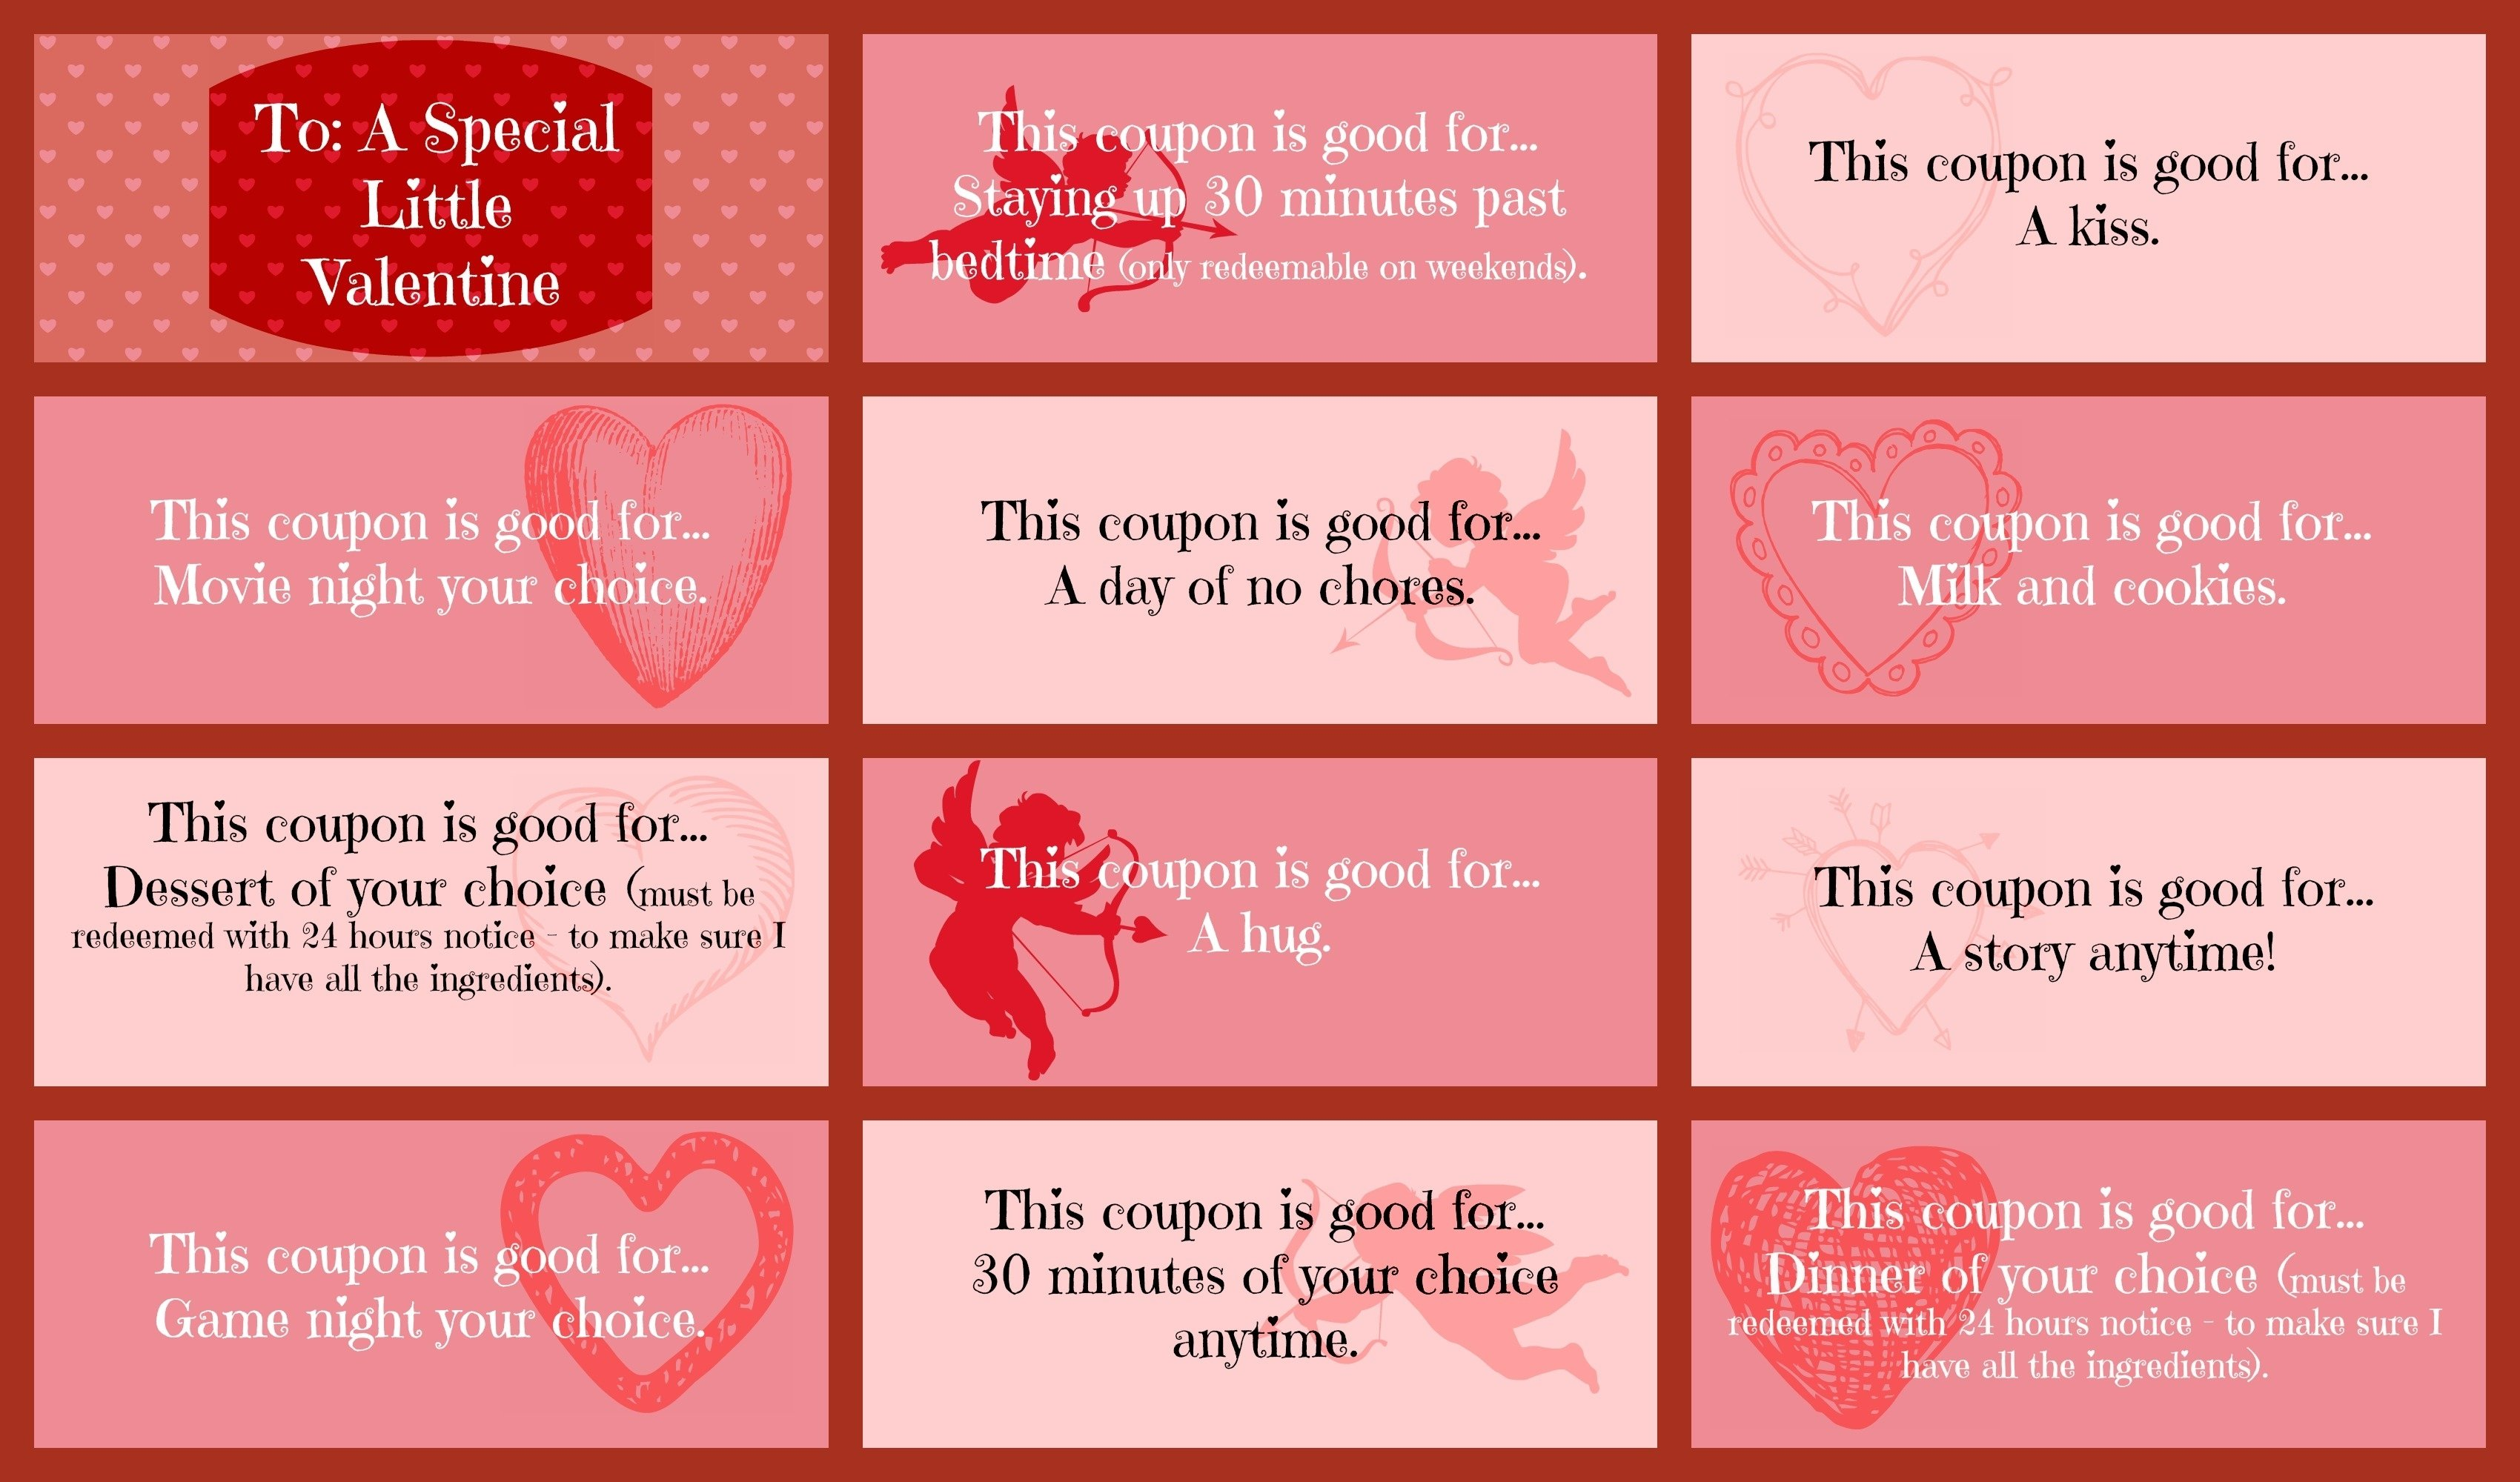 10 Most Popular Coupon Book For Boyfriend Ideas valentine day coupon book ideas startupcorner co 2 2020